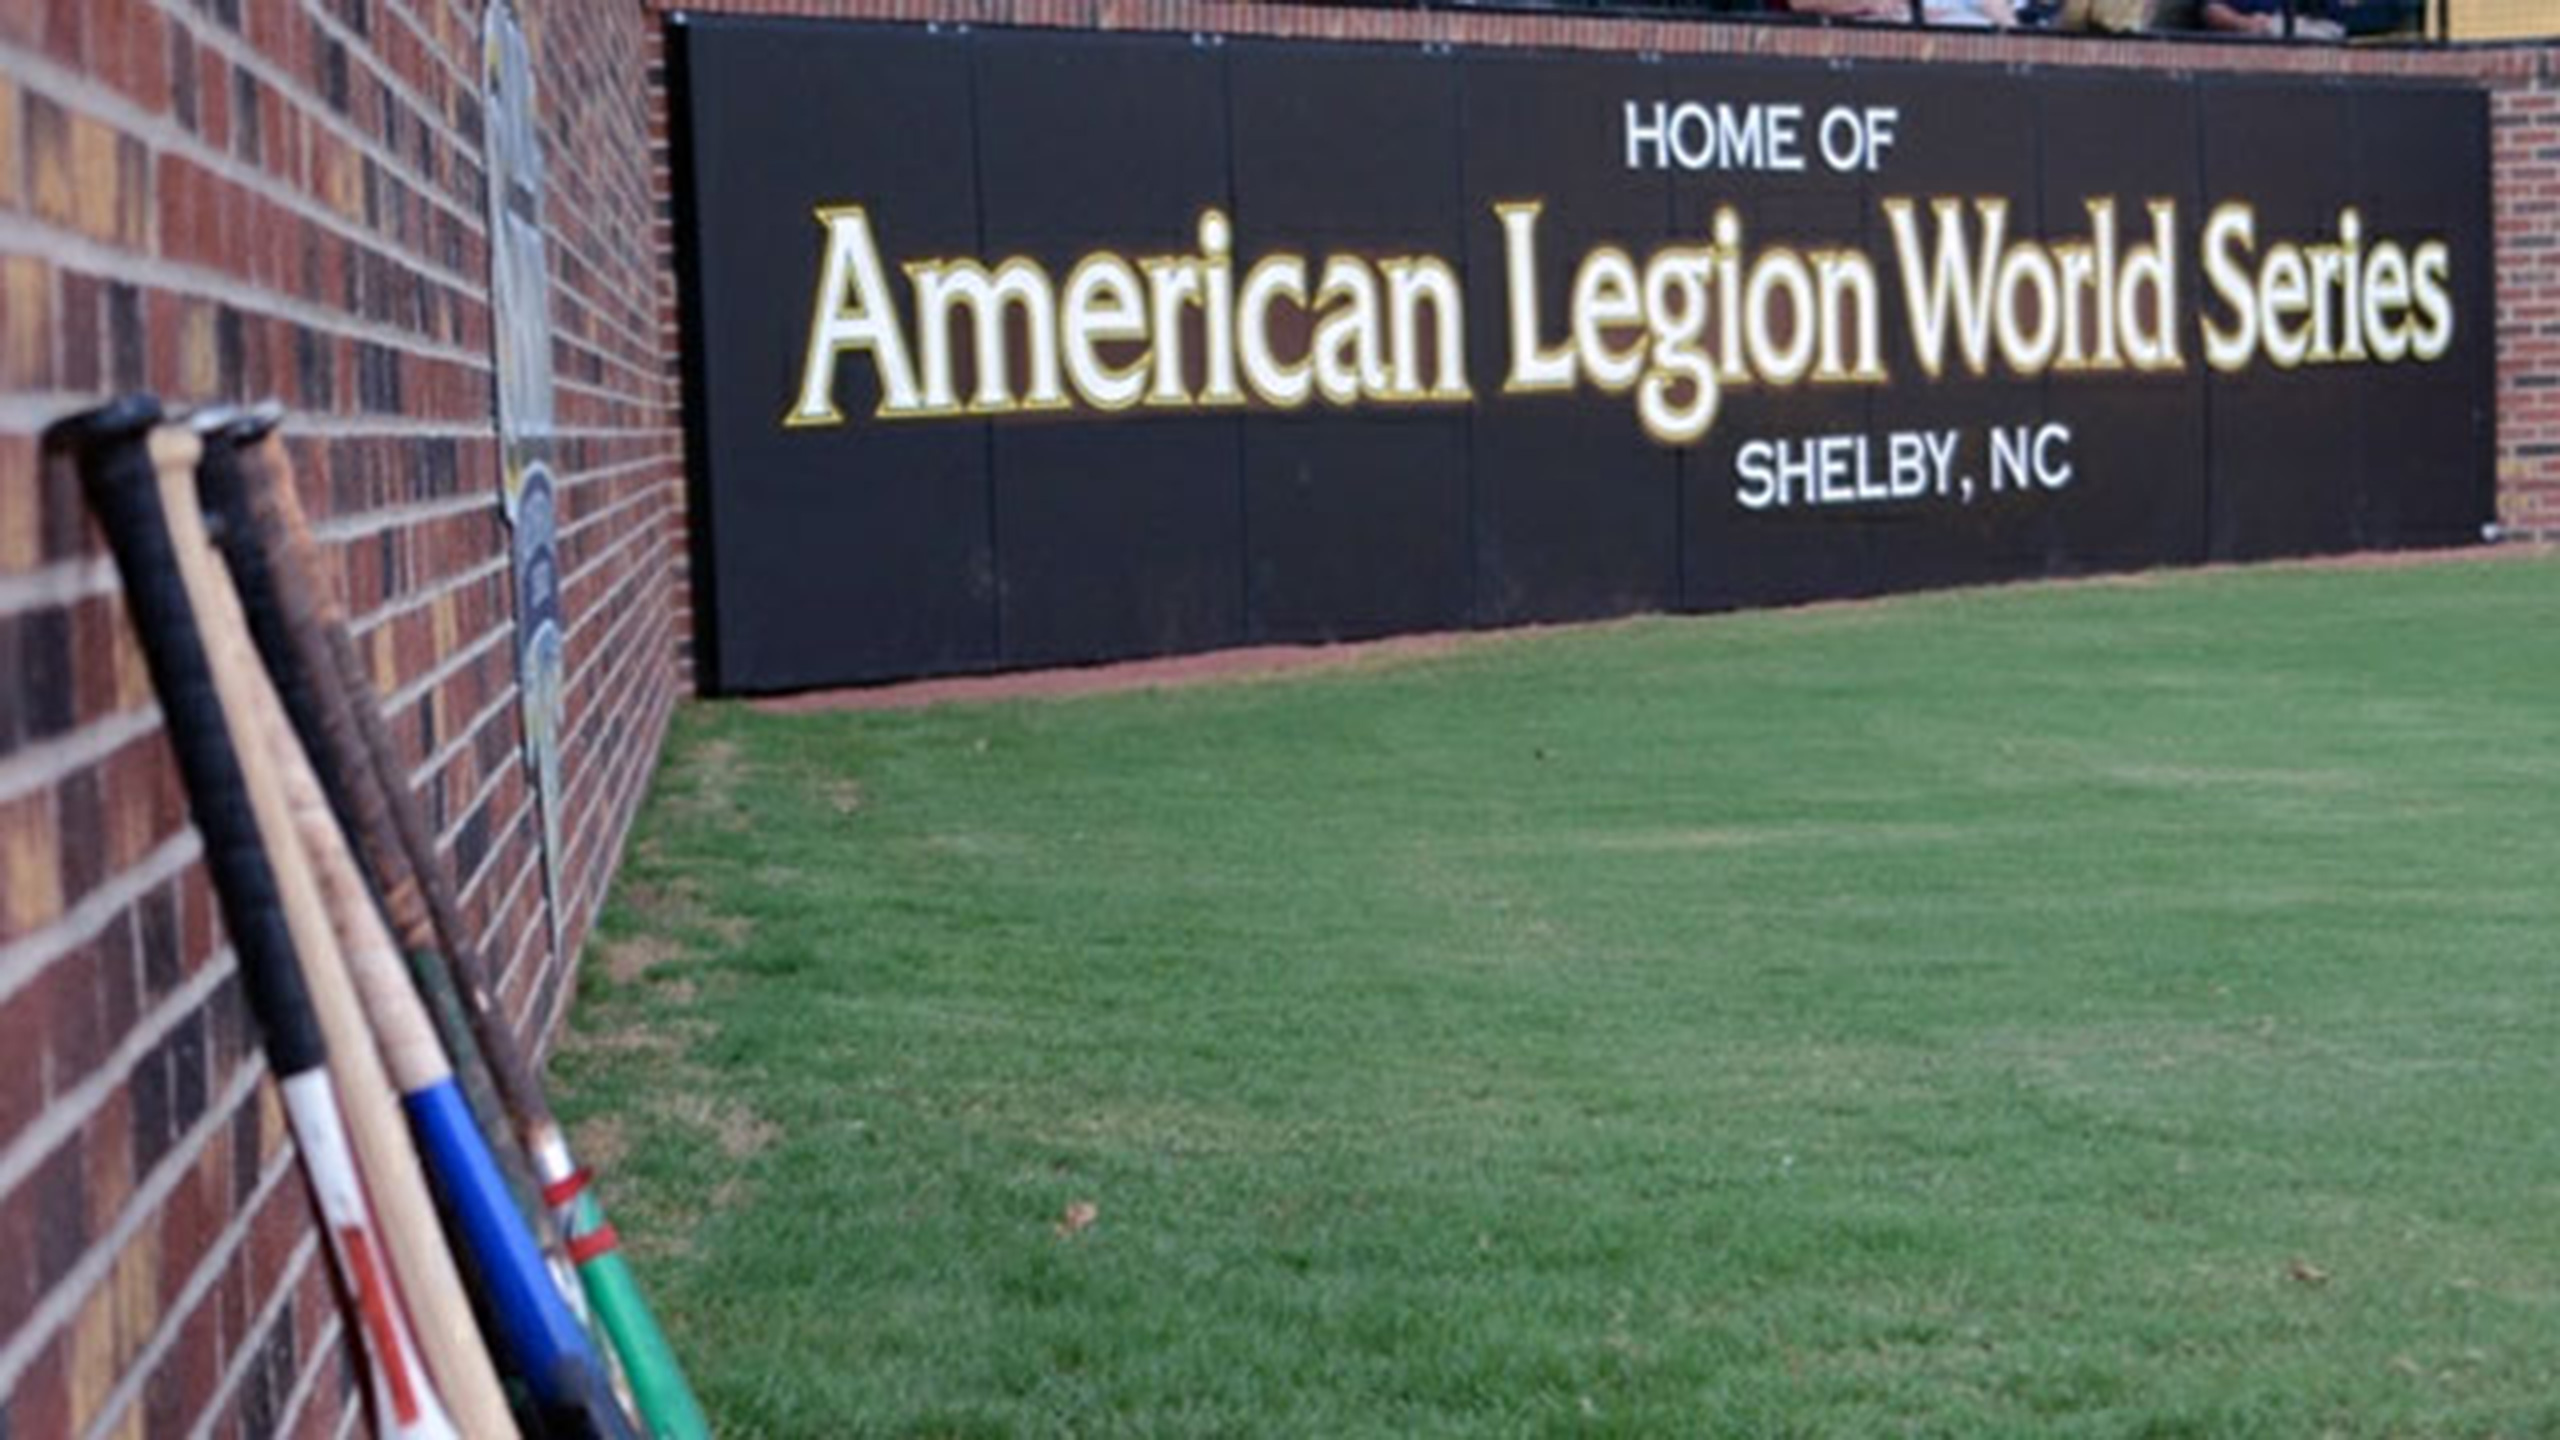 Northwest vs. Southeast (American Legion)